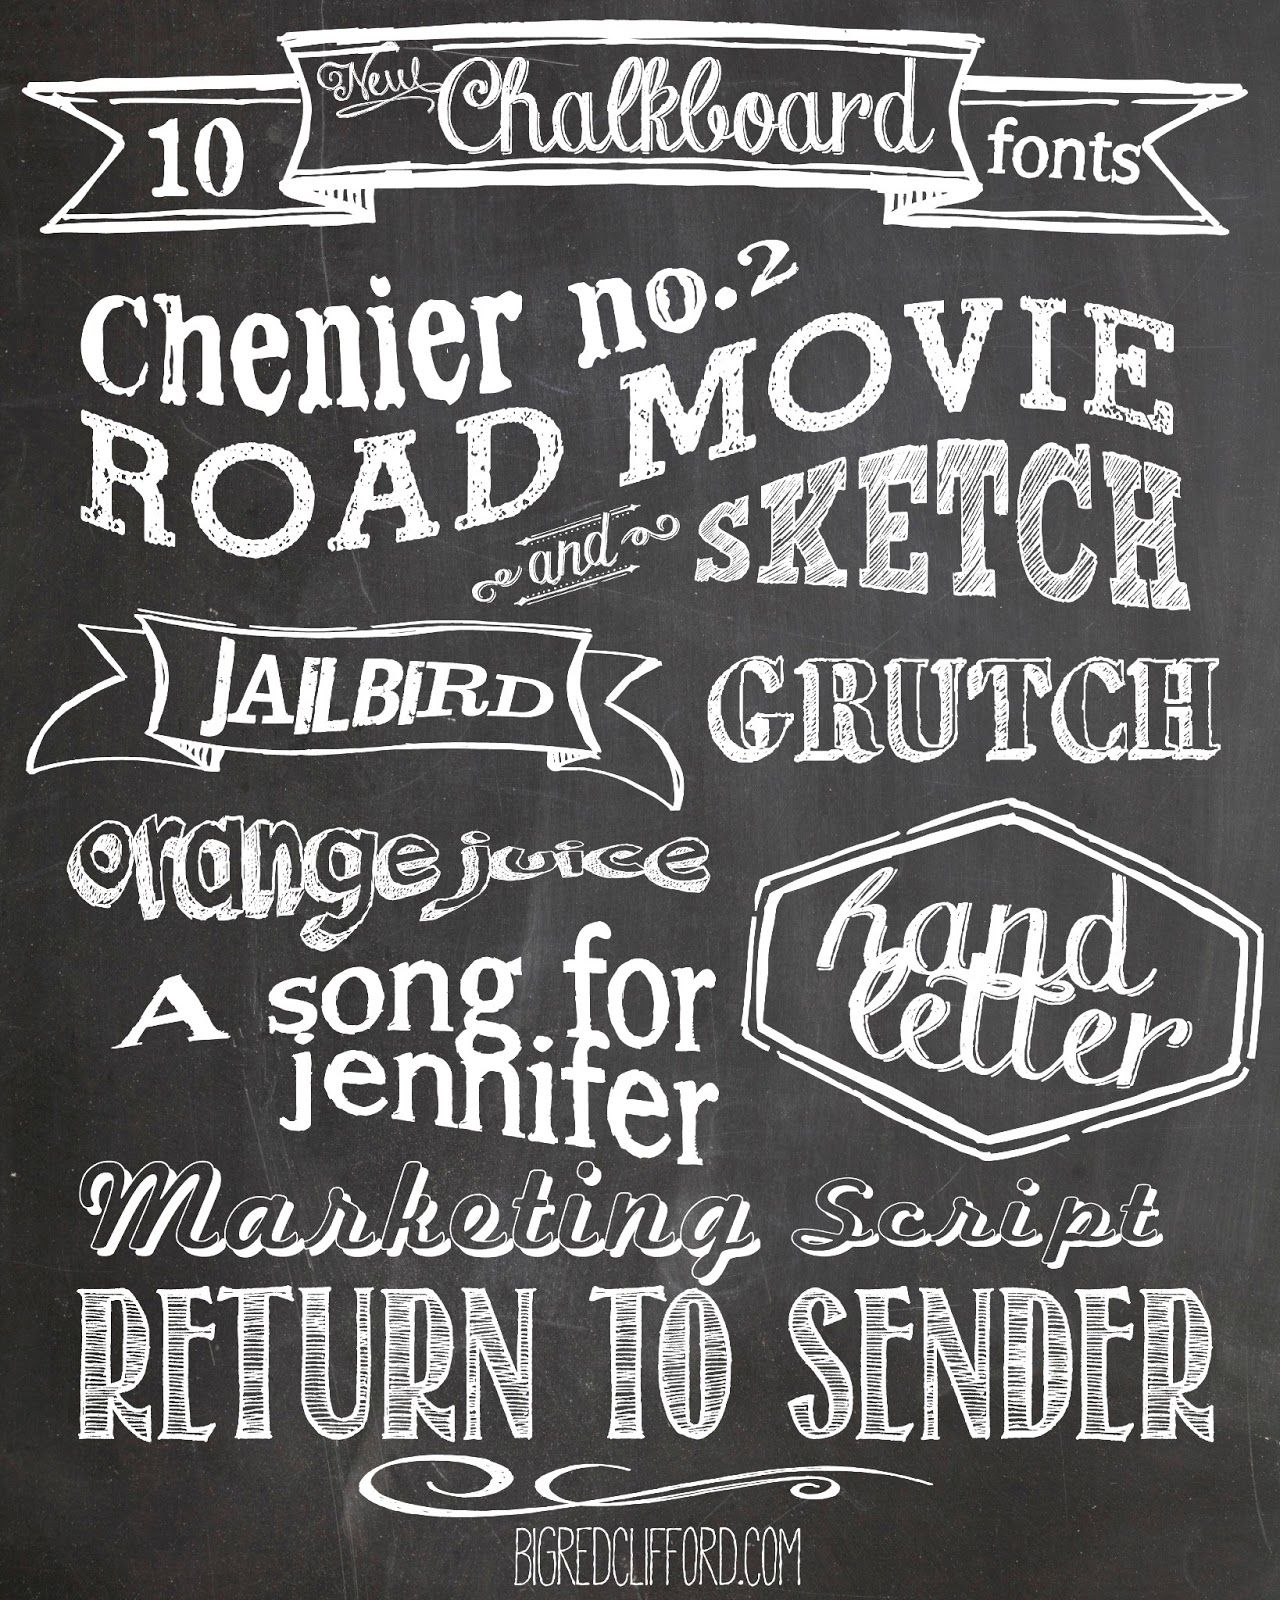 17 Best images about Chalkboard fonts on Pinterest | Handwriting ...